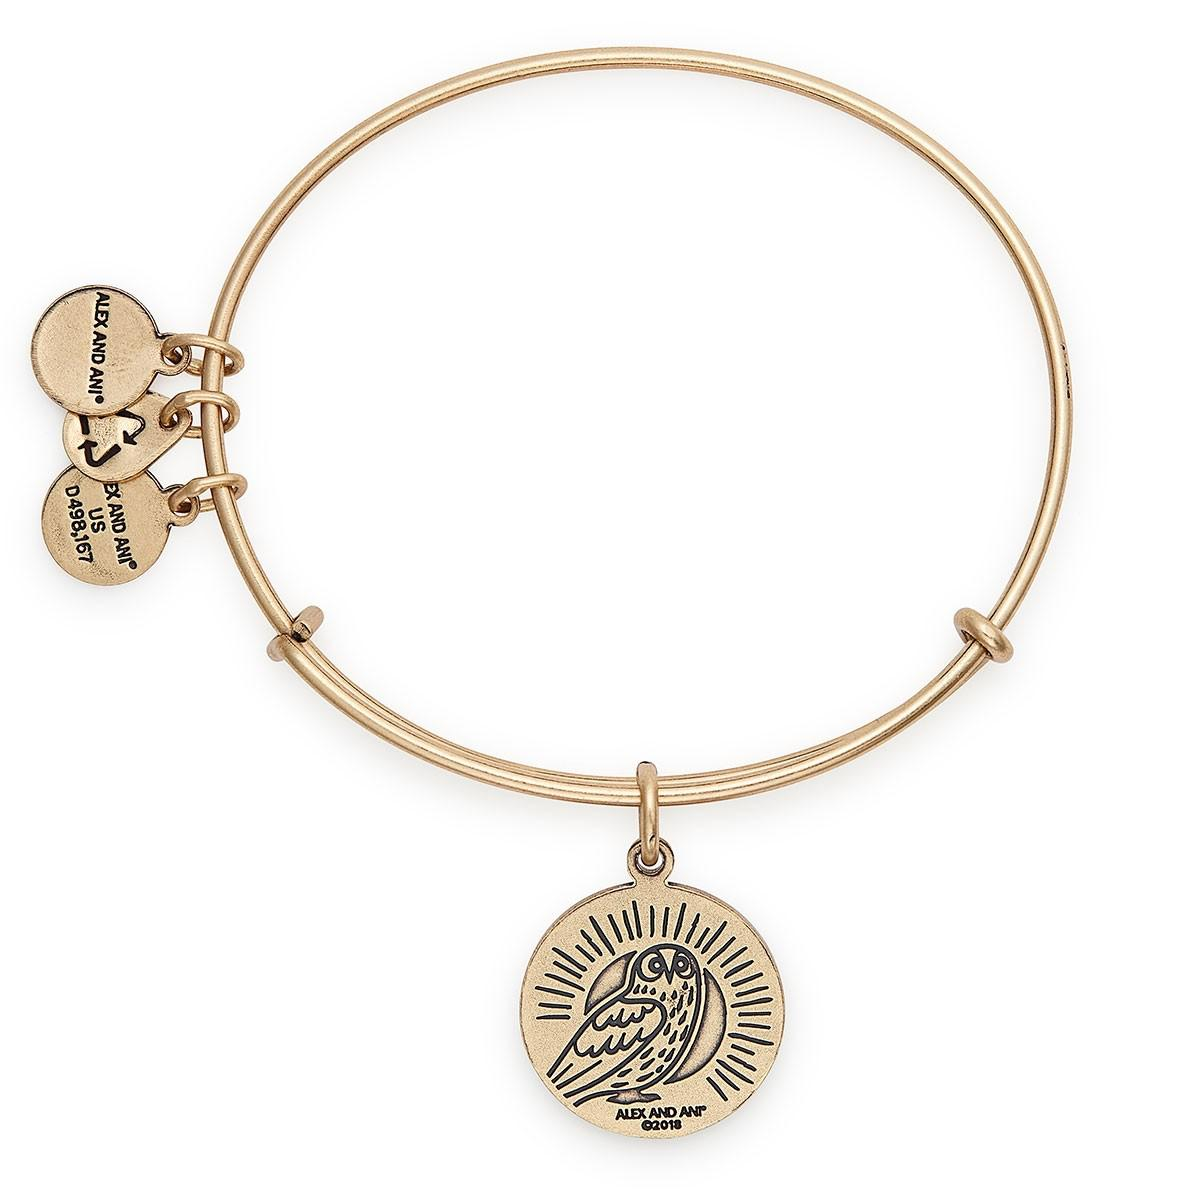 Gallery Previously Sold At Alex And Ani